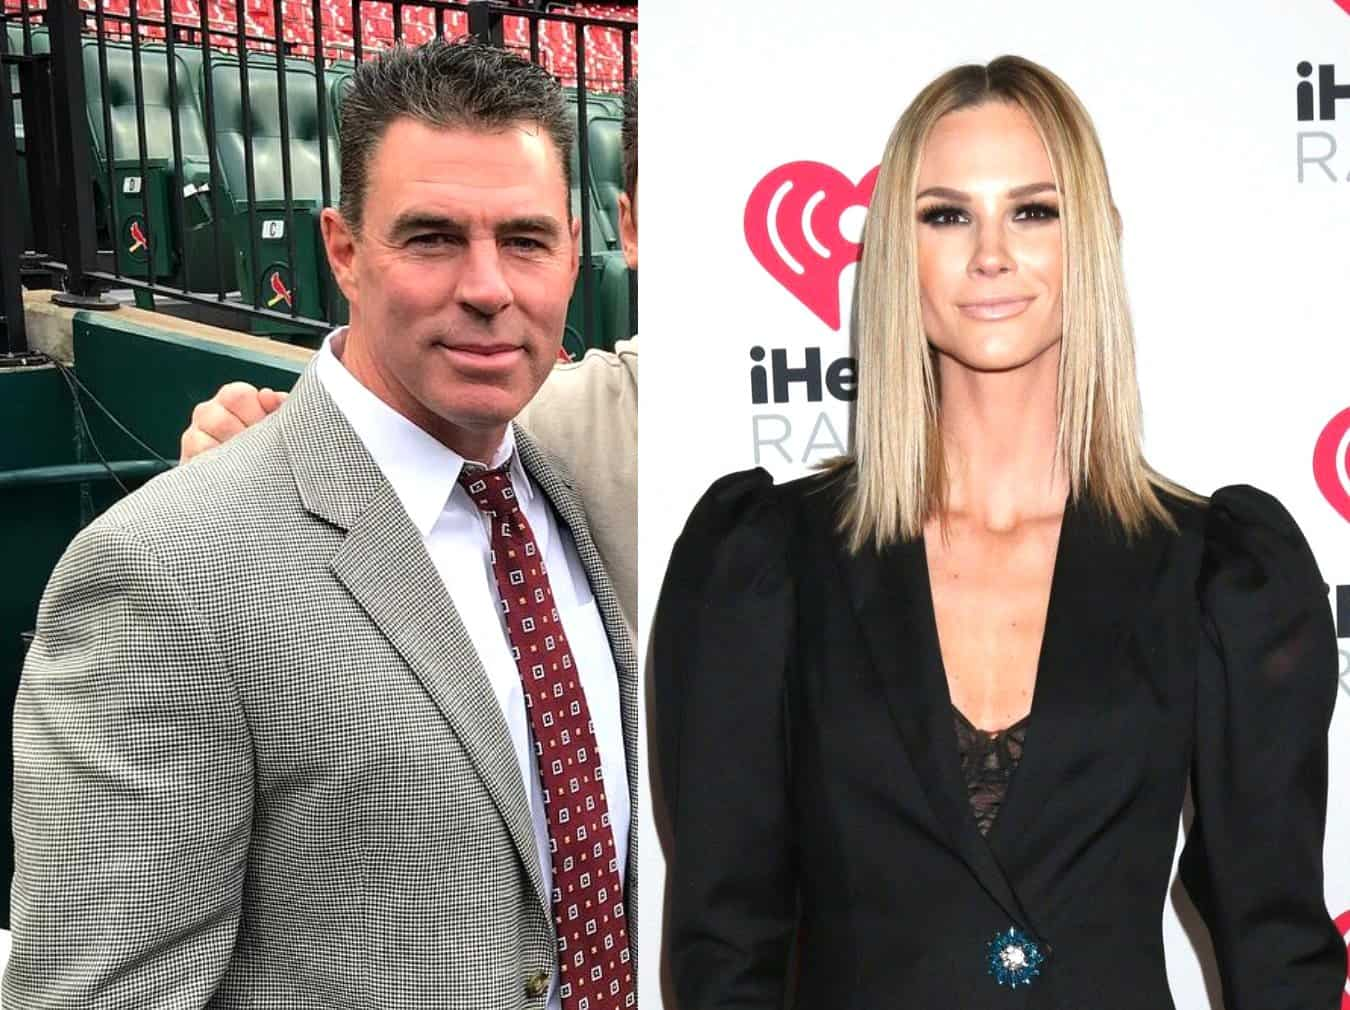 RHOC's Jim Edmonds Deletes All Photos of Meghan King Edmonds From His Instagram After Nasty Split